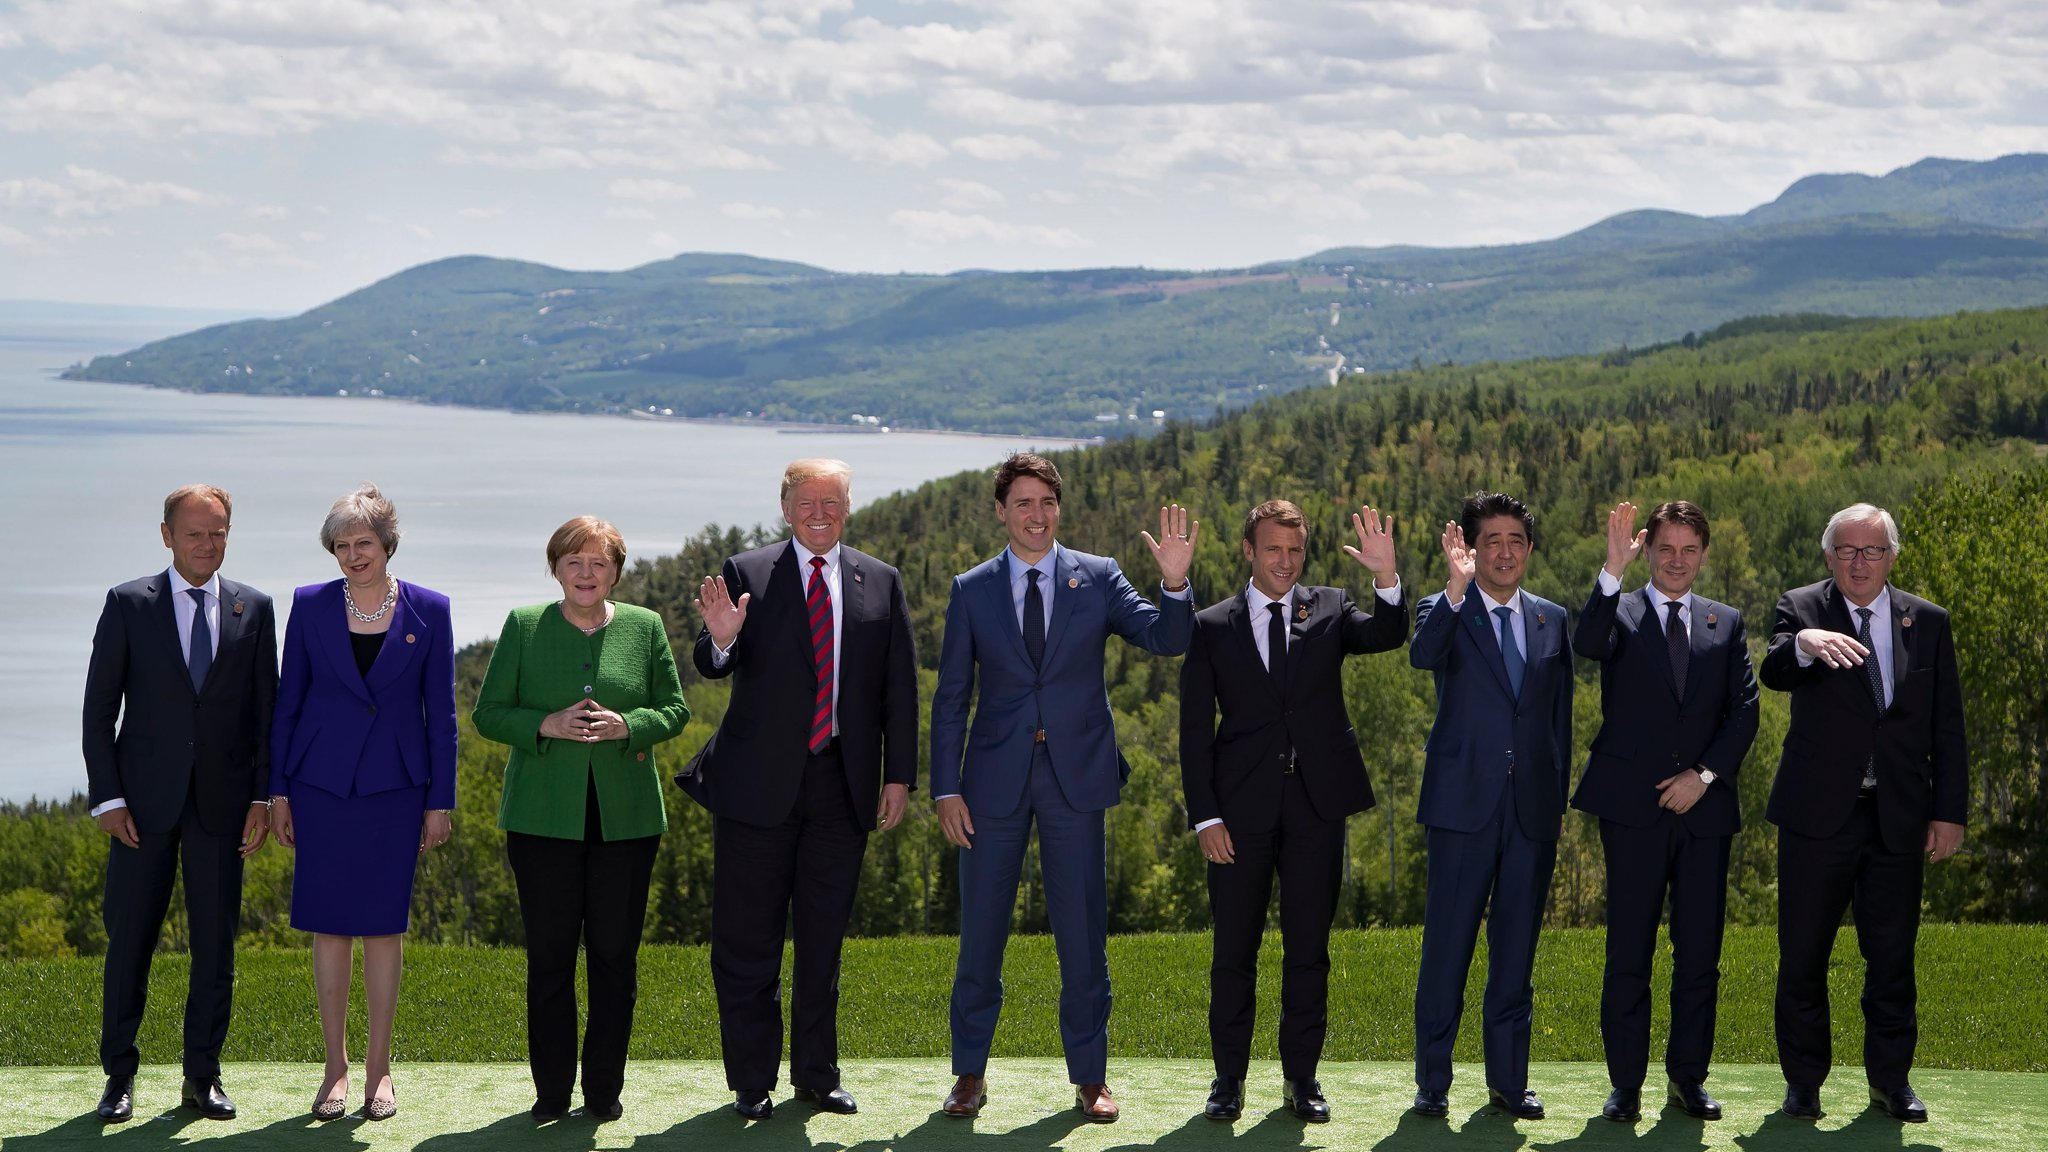 G7 summit in Biarritz should mark the return of the western alliance